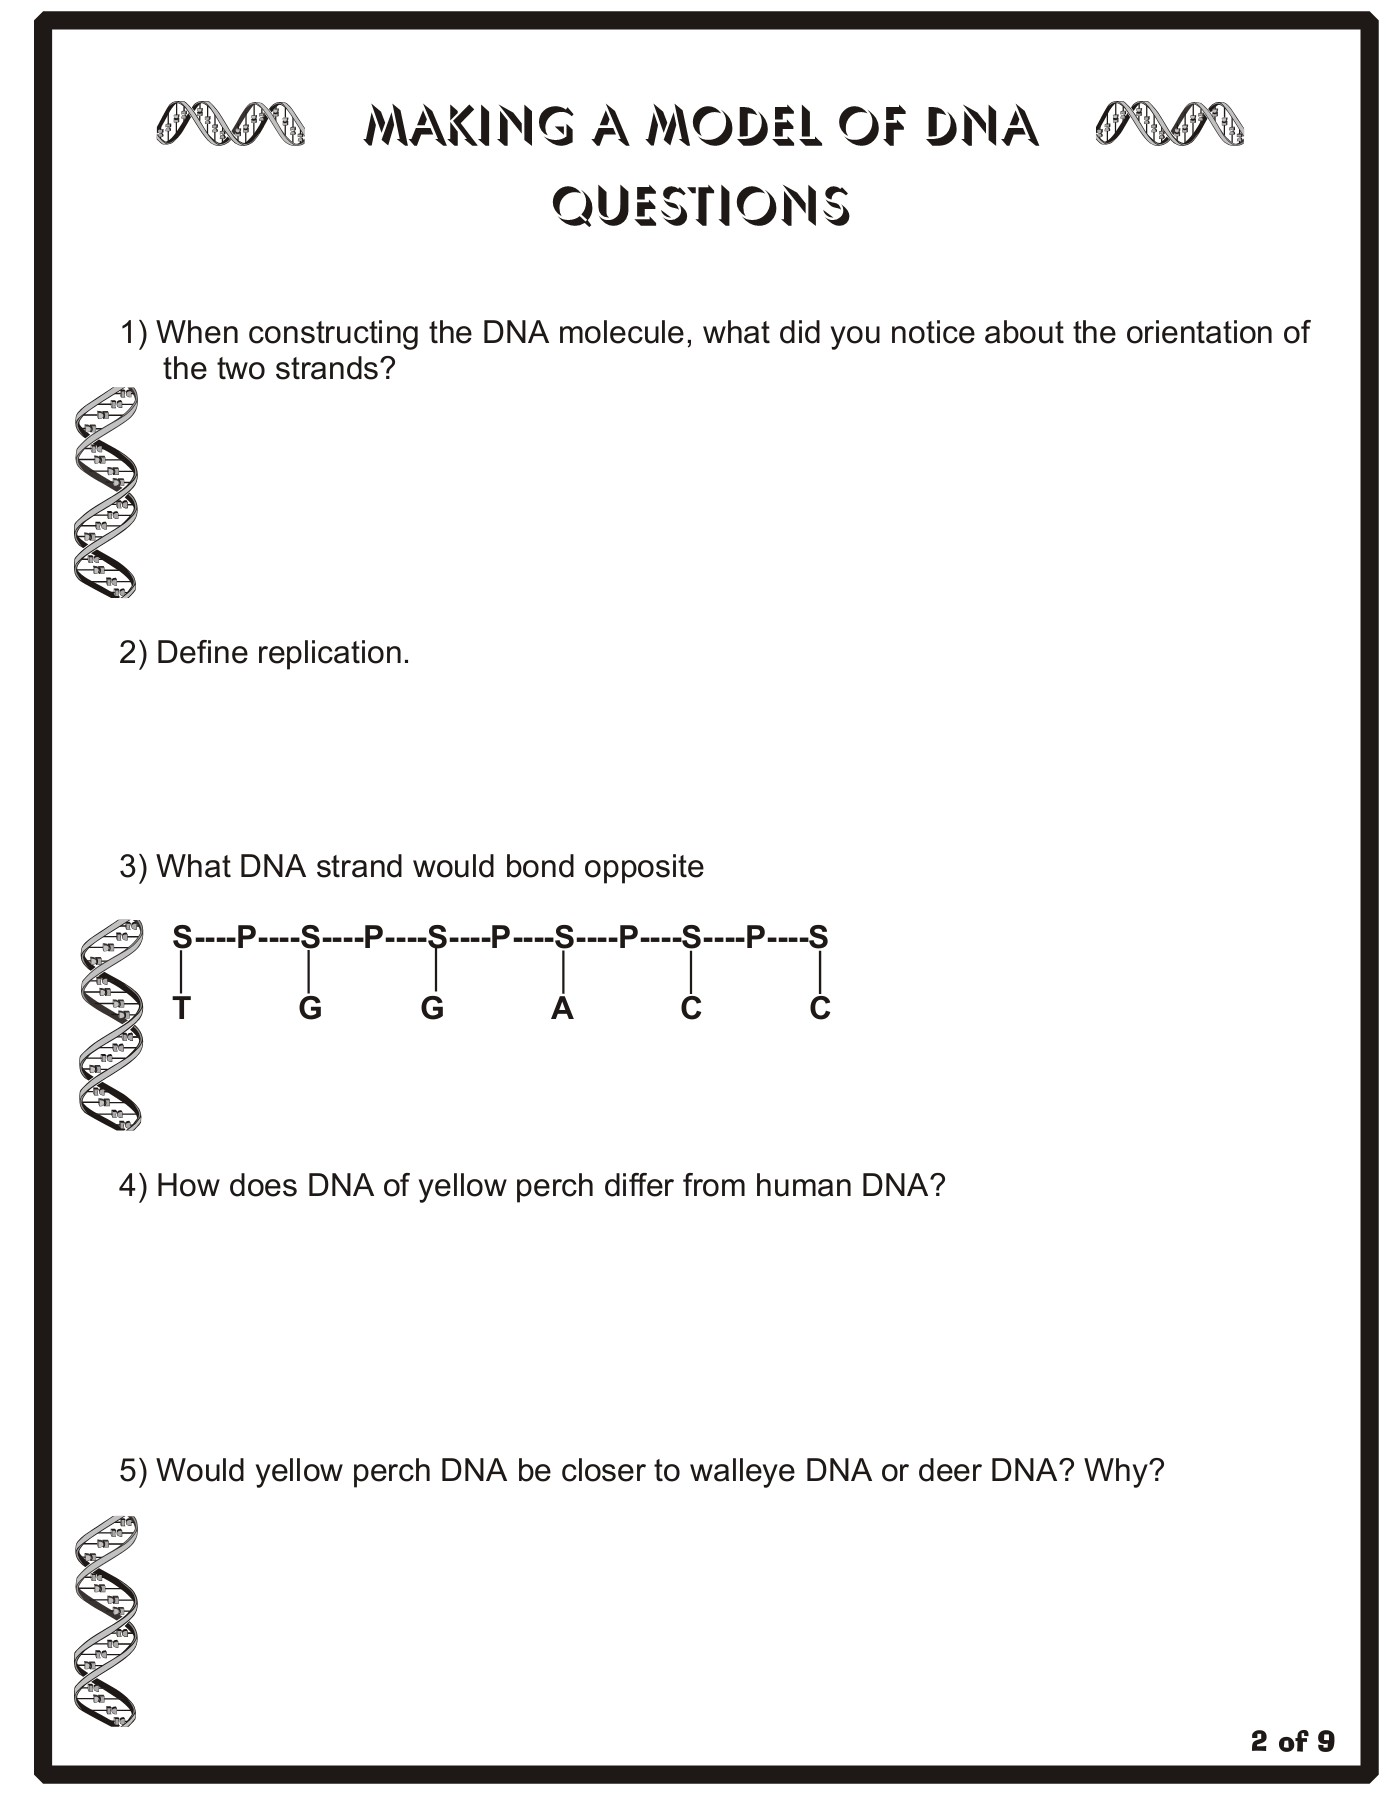 Making a Model of DNA Instructions - Tripod.com Pages 1 - 9 ...